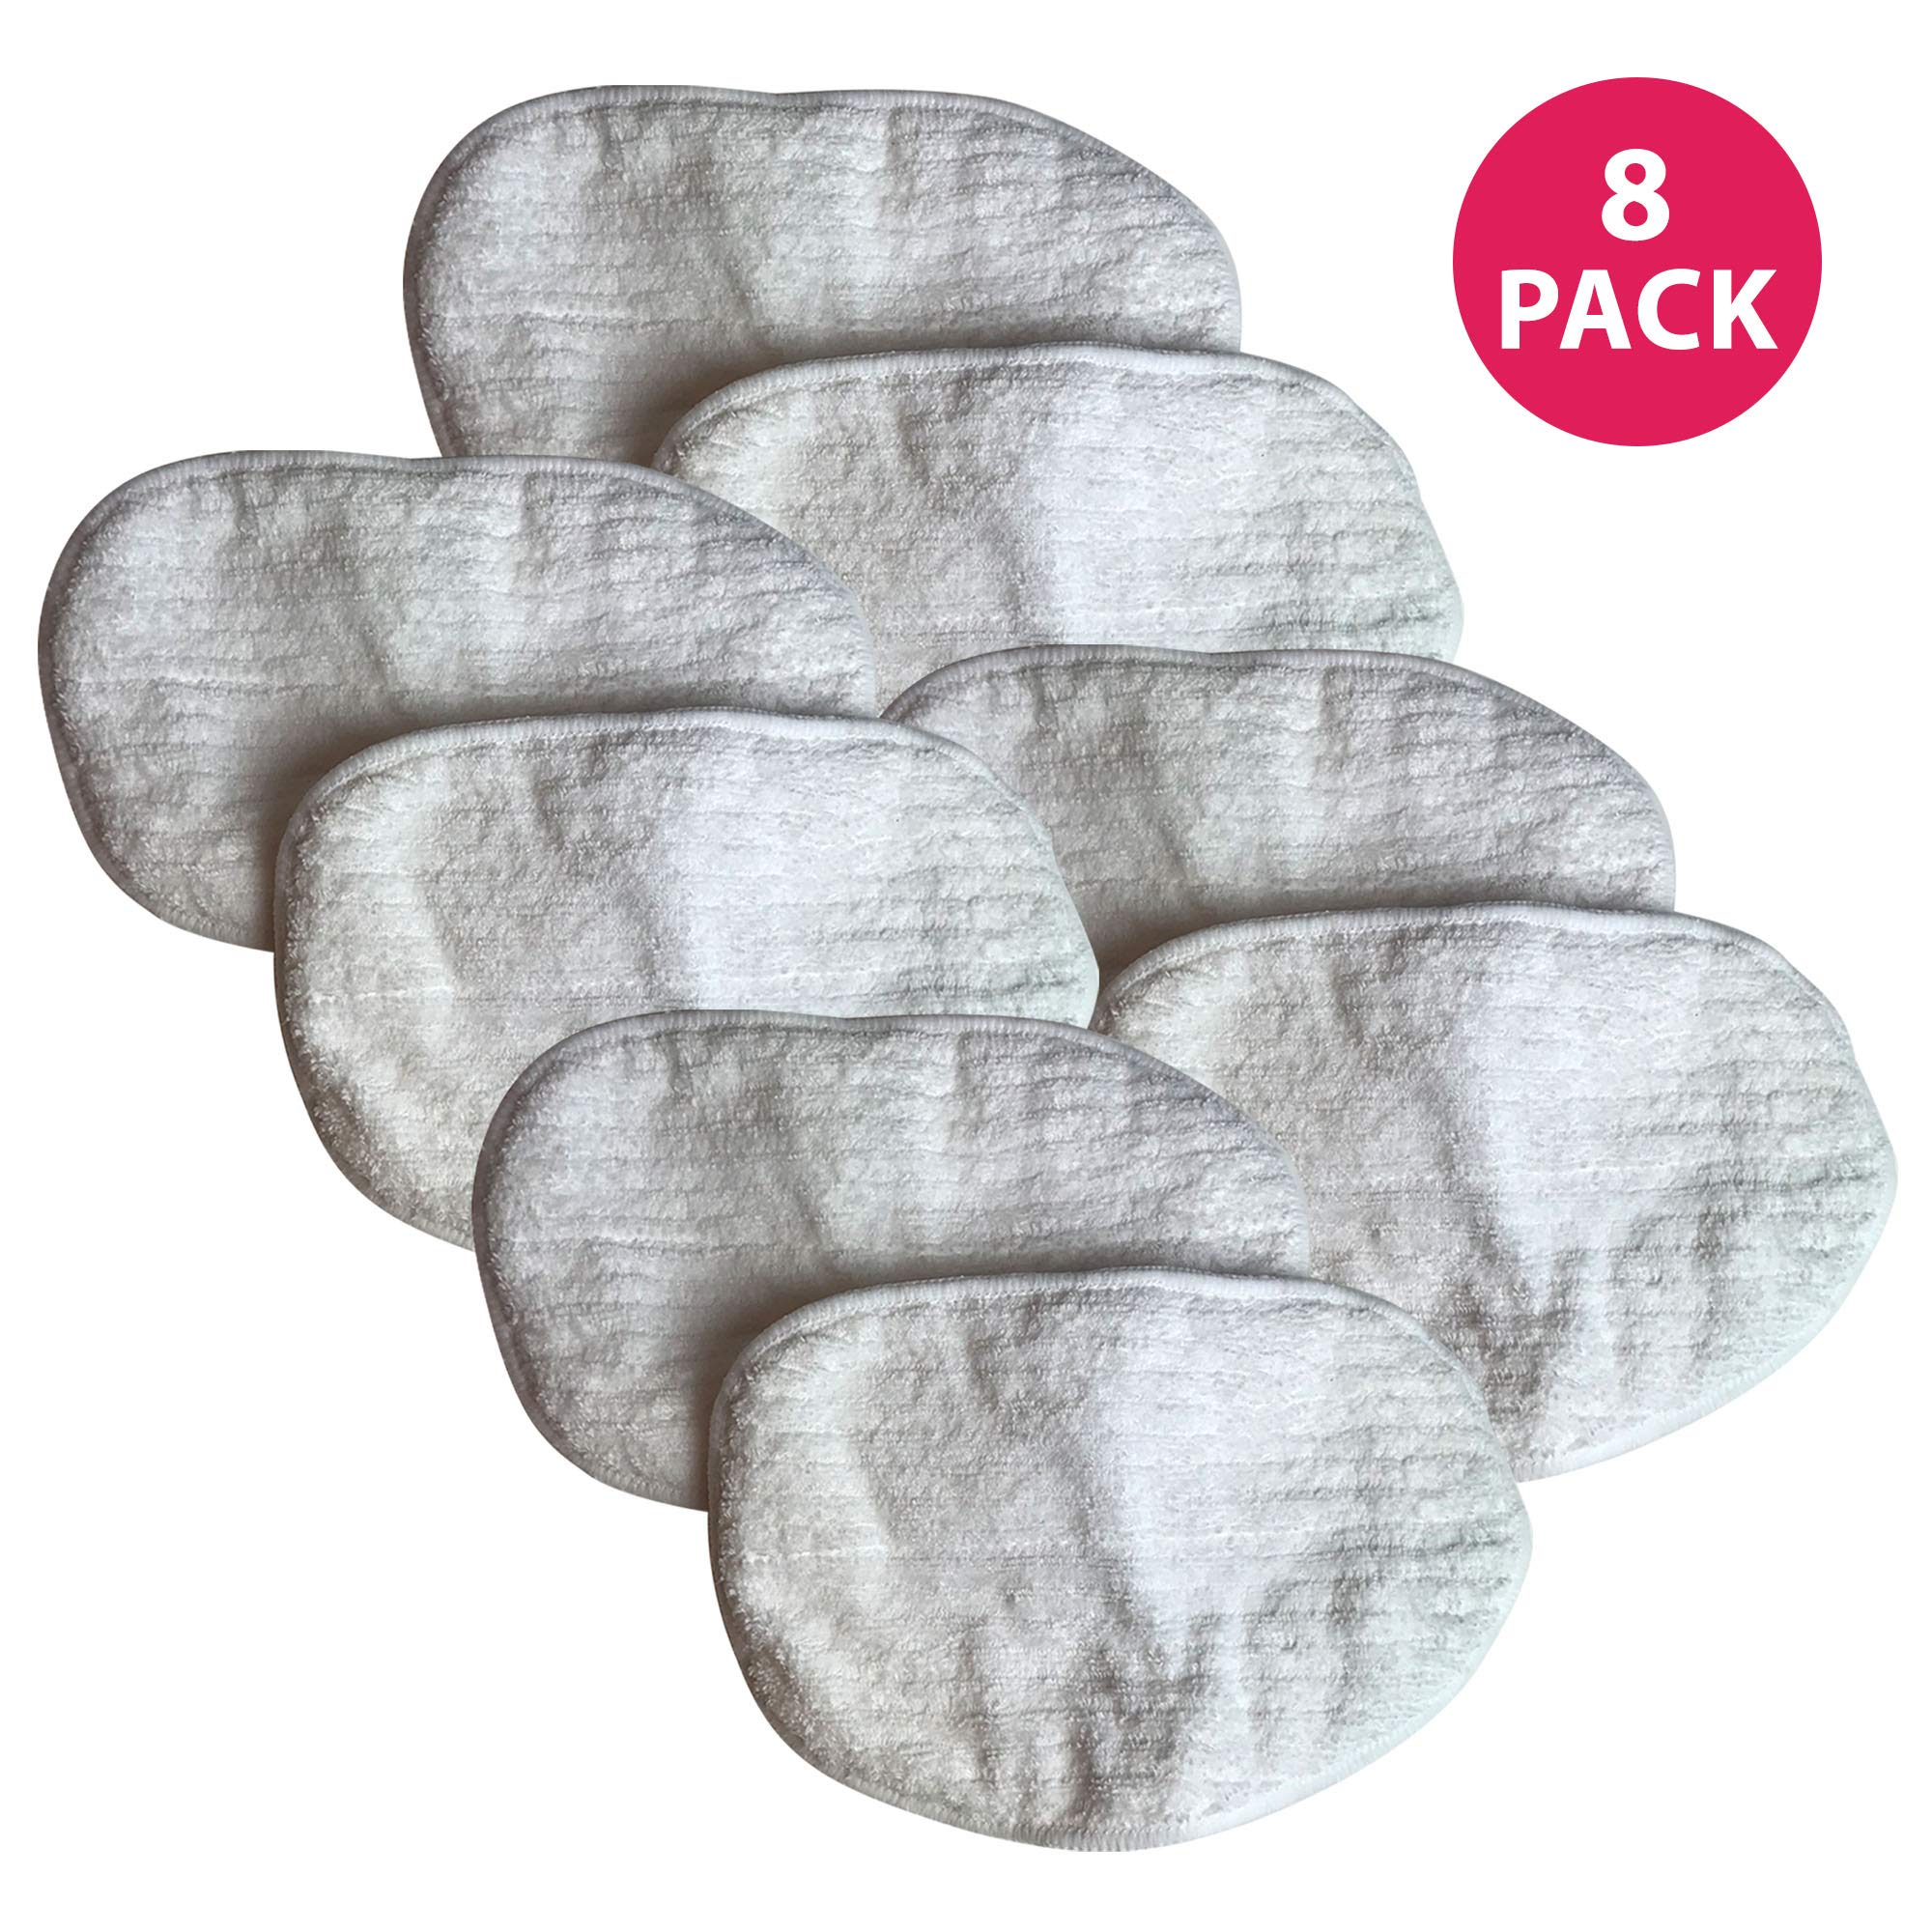 Think Crucial Replacement Mop Pads Compatible with Bissell Replacement Microfiber Steam Mop Pad Parts - Hardwood Mop Head Part - Parts 203-2158, 2032158, 3255, 32525 Model 1867 - Bulk (8 Pack) by Crucial Vacuum